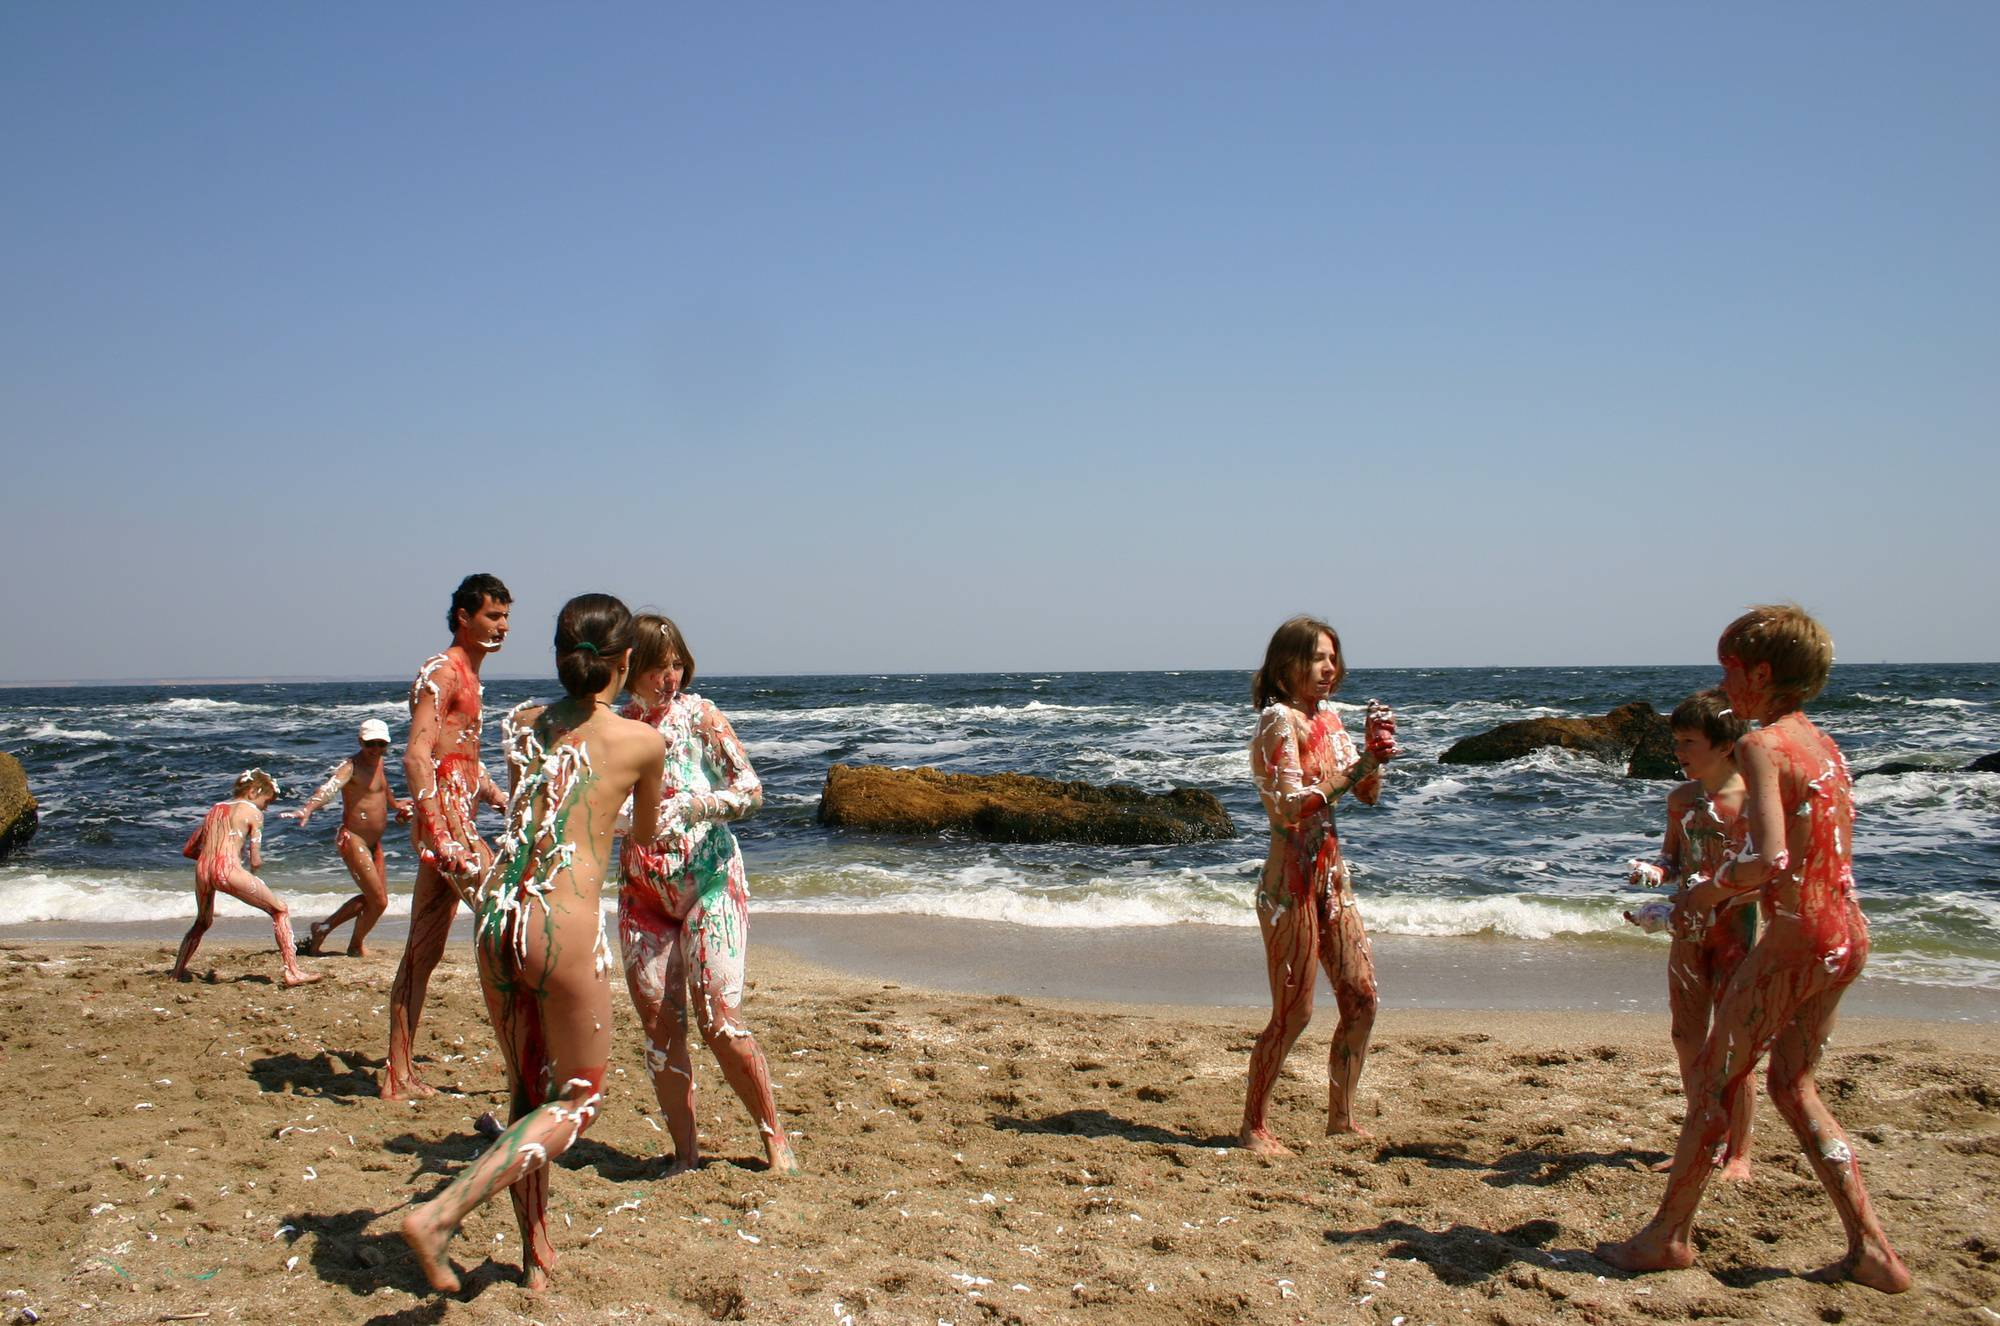 Beach Paint Fight Actions - 1